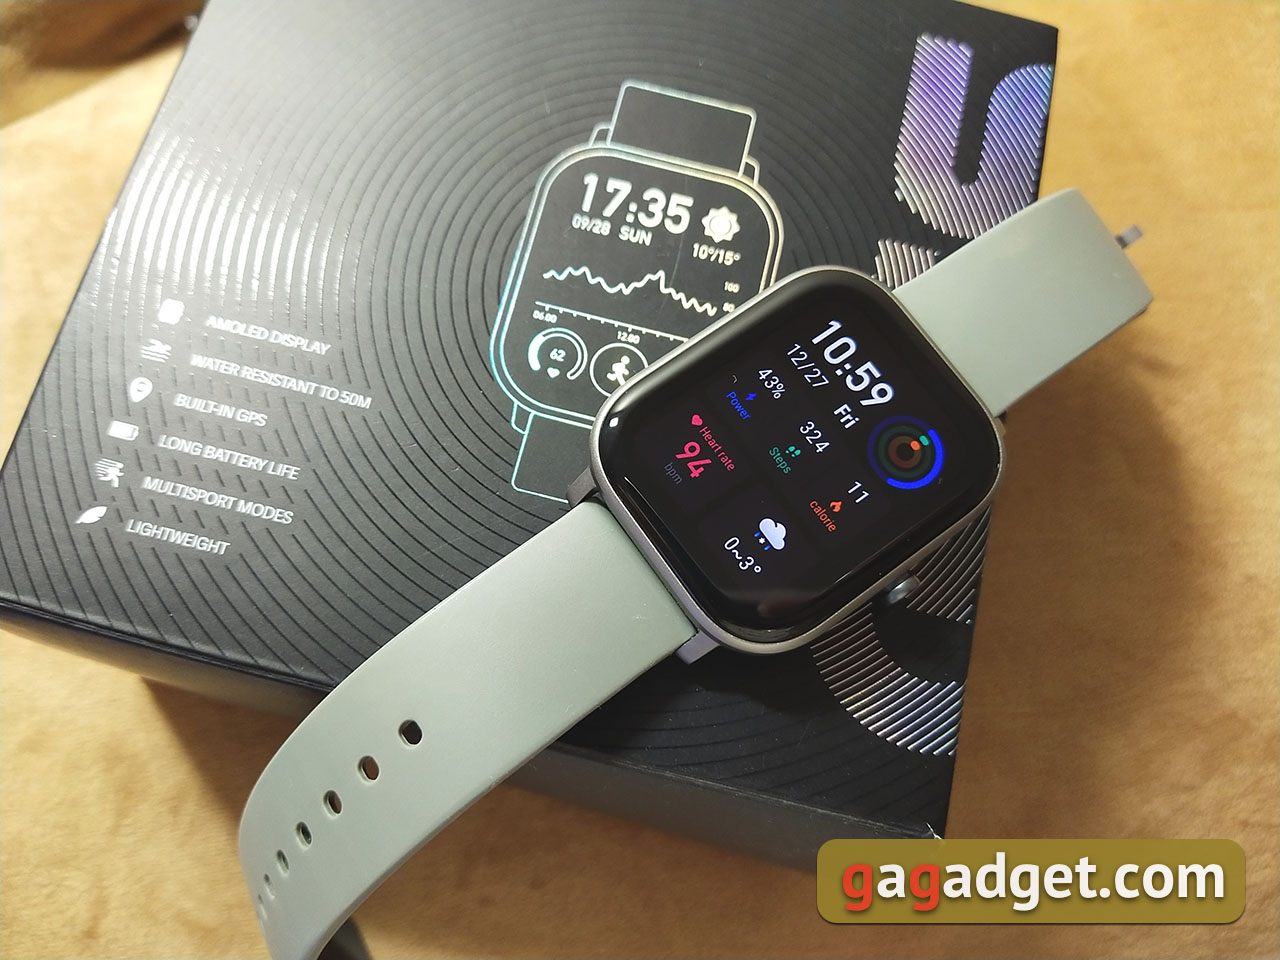 Огляд Amazfit GTS: Apple Watch для бідних?